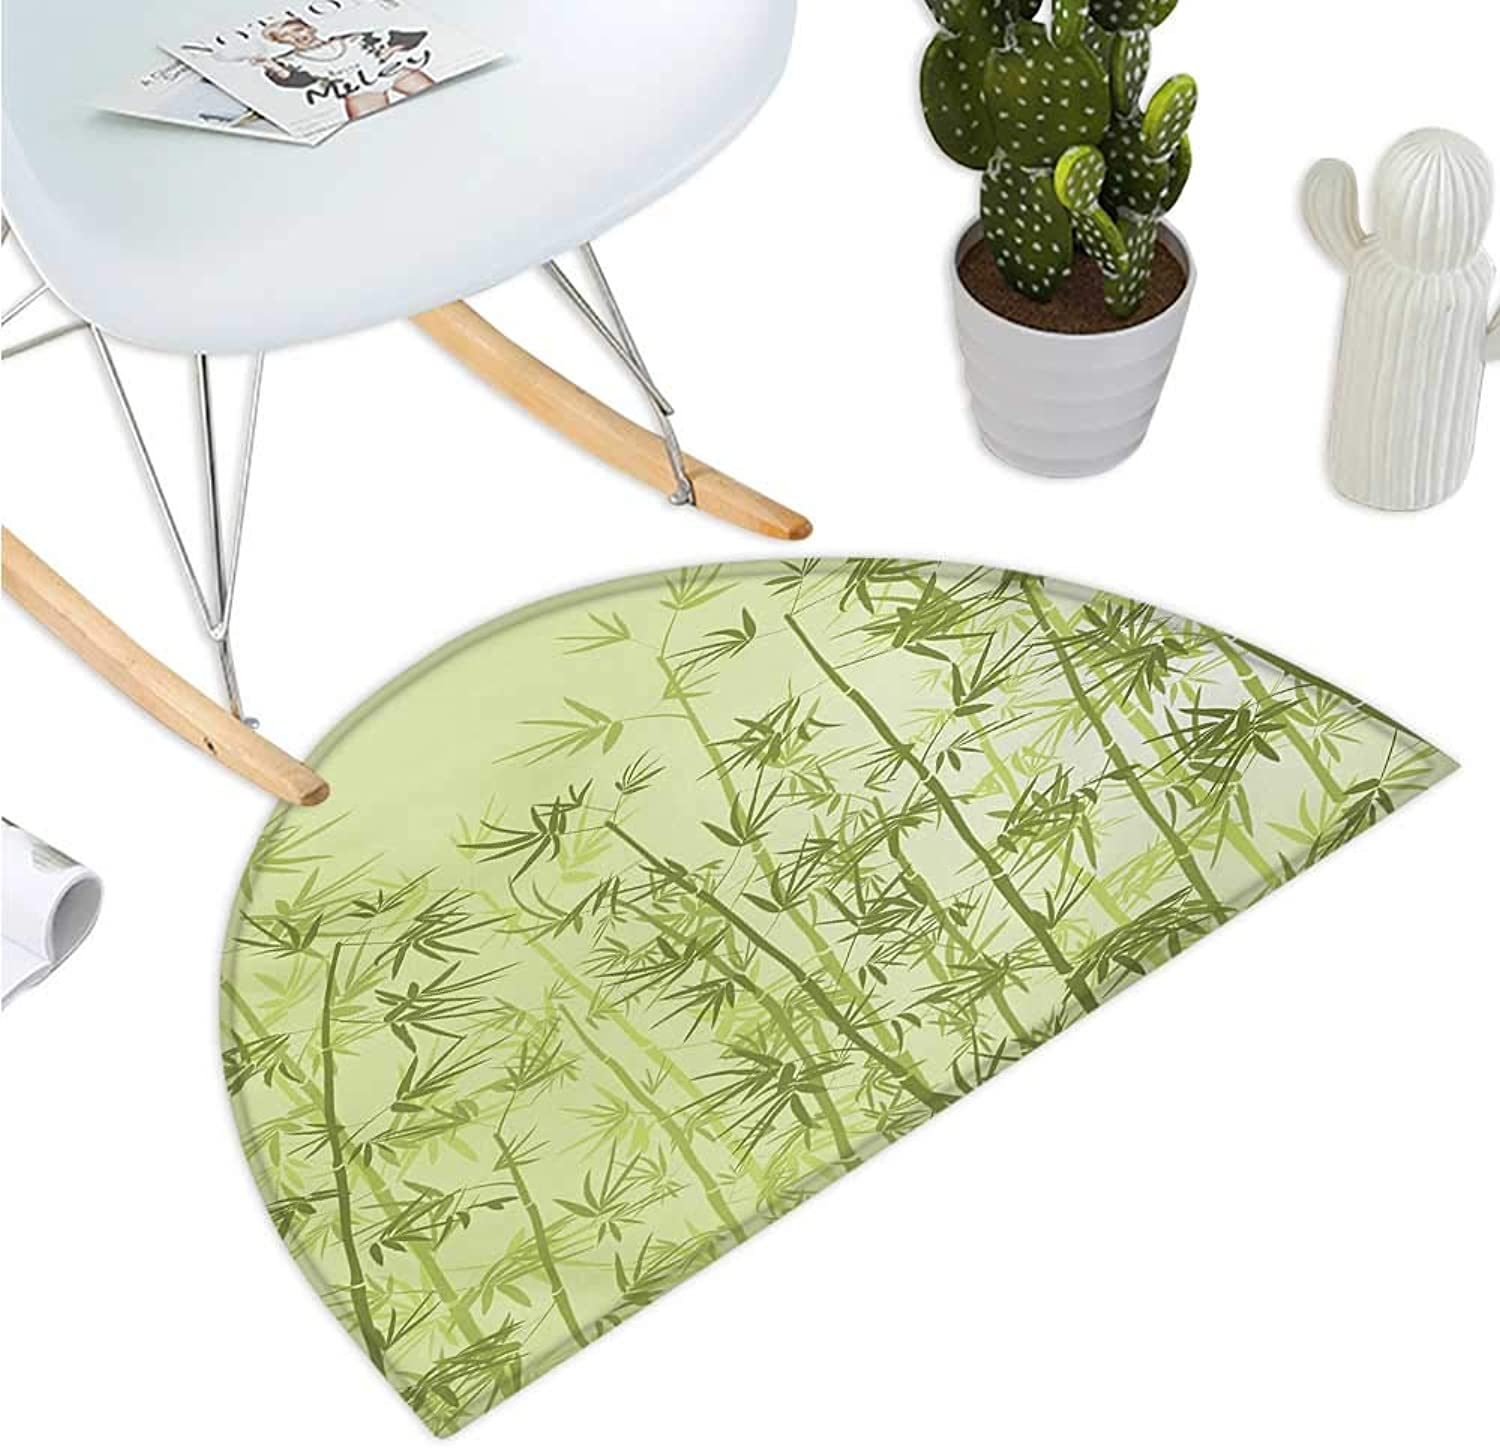 Forest Semicircular Cushion Tropical Style Woodland Spiritual Nature Spa Chakra Zen Yoga Concept Entry Door Mat H 47.2  xD 70.8  Pale Green Dark Green